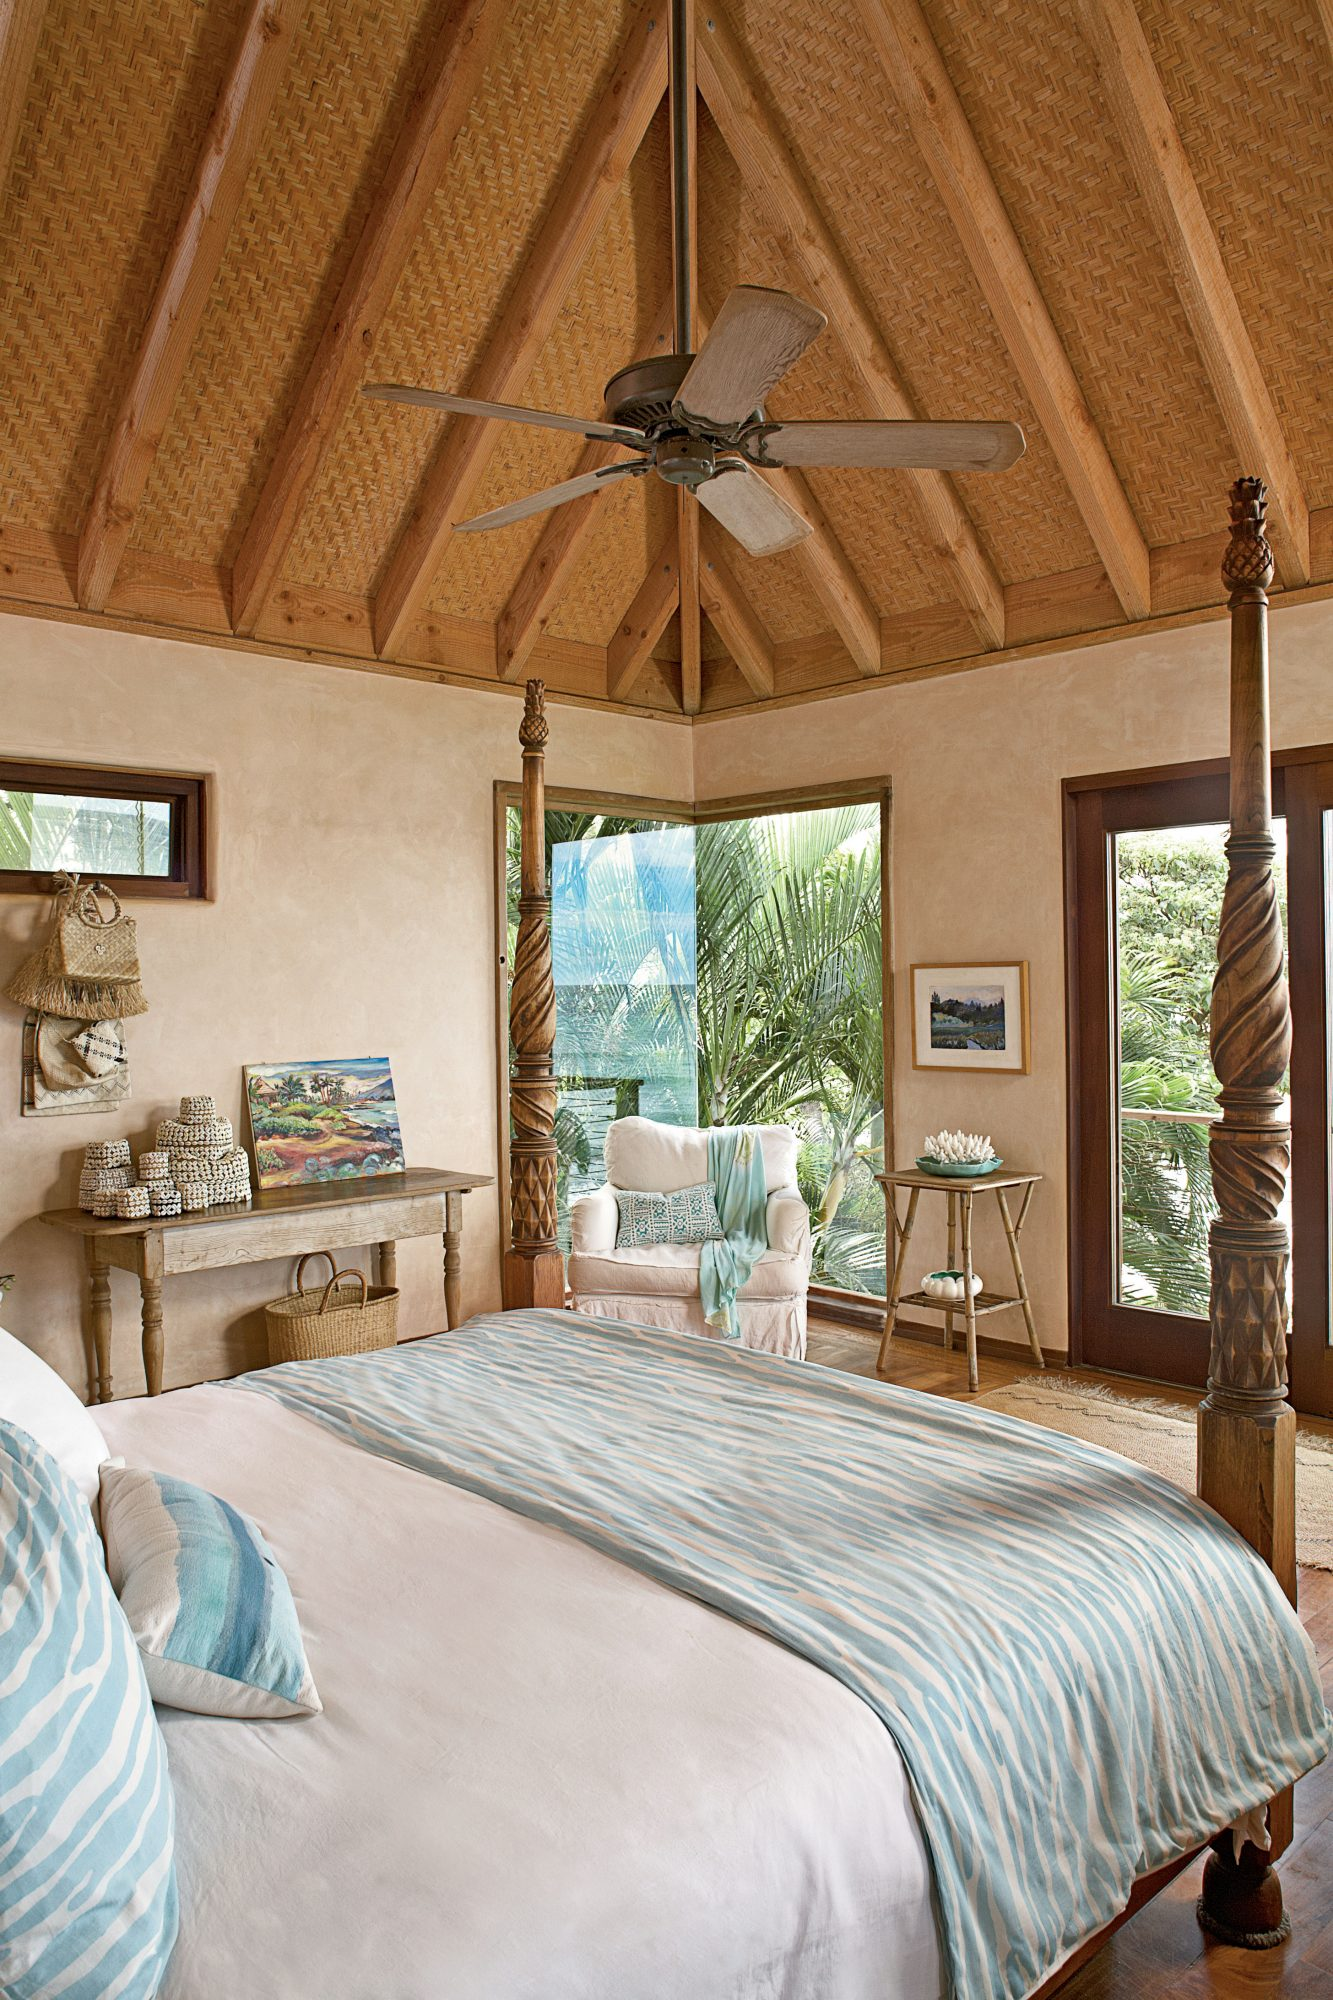 This Maui bedroom is full of island style. The ceiling's exposed rafters and bamboo ceiling, carved bedposts, and nearly floor-to-ceiling windows give the space a Swiss Family Robinson-like feel.